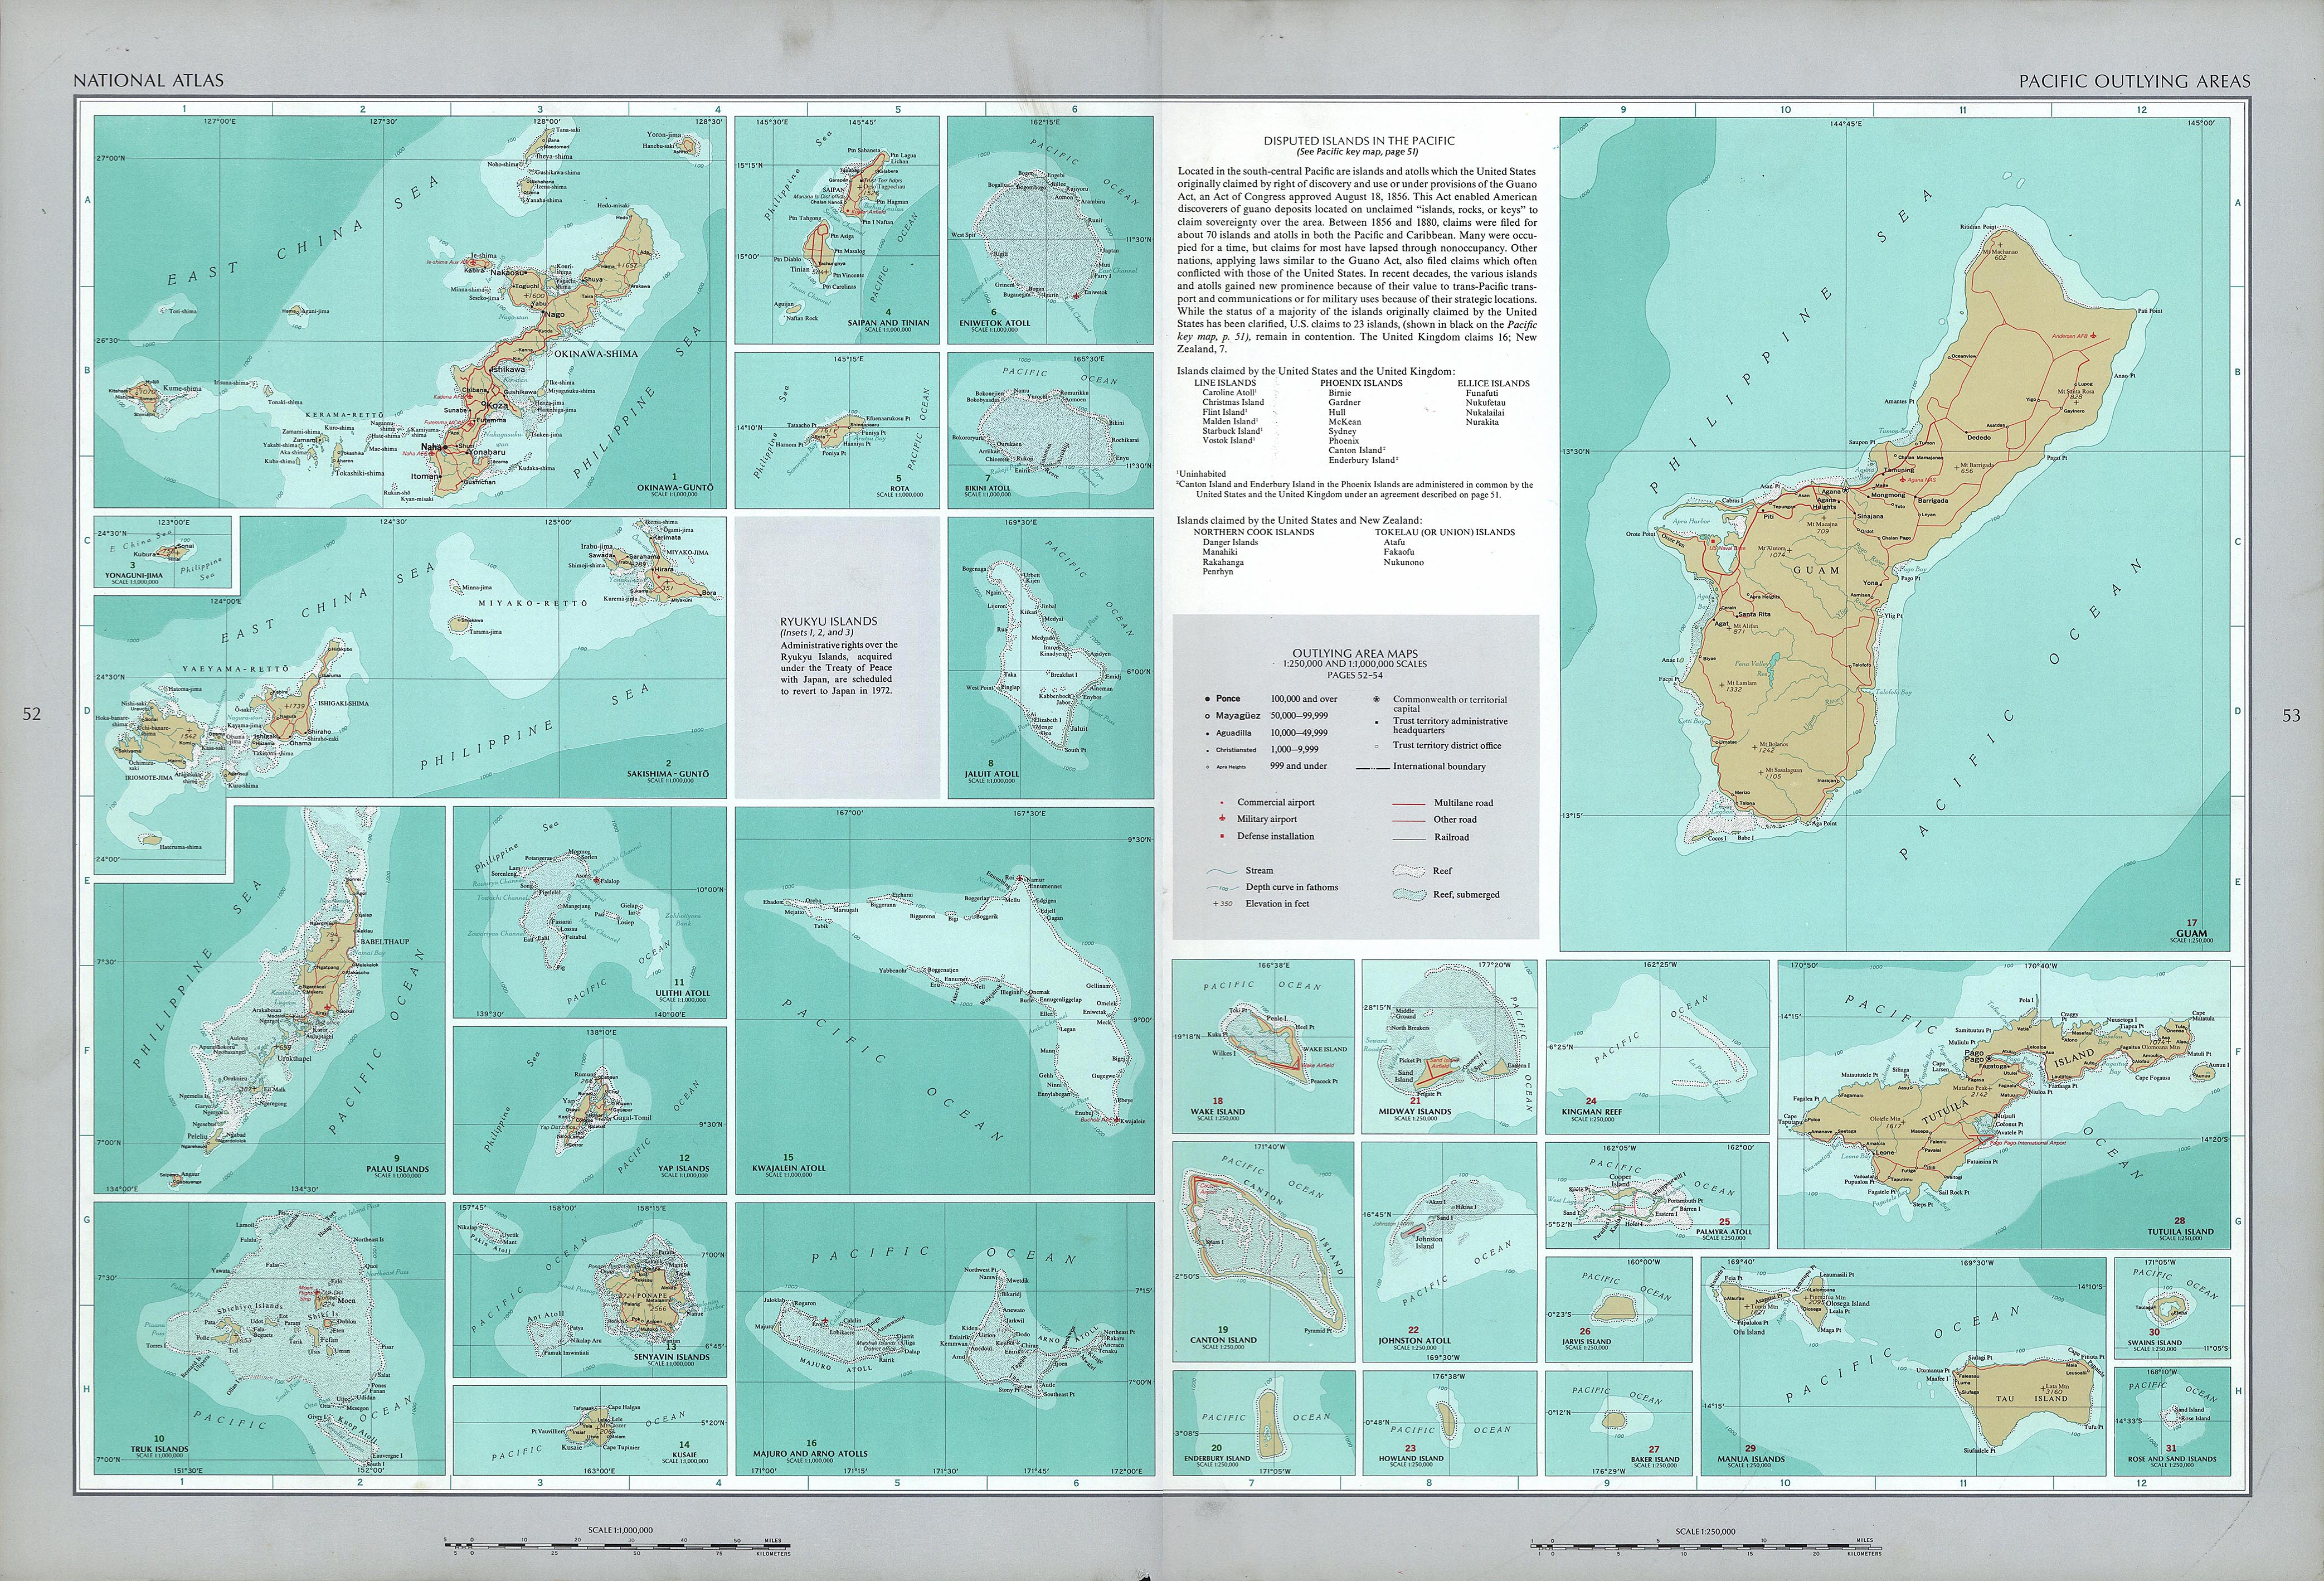 The National Atlas of the United States of America- Perry-Castañeda on